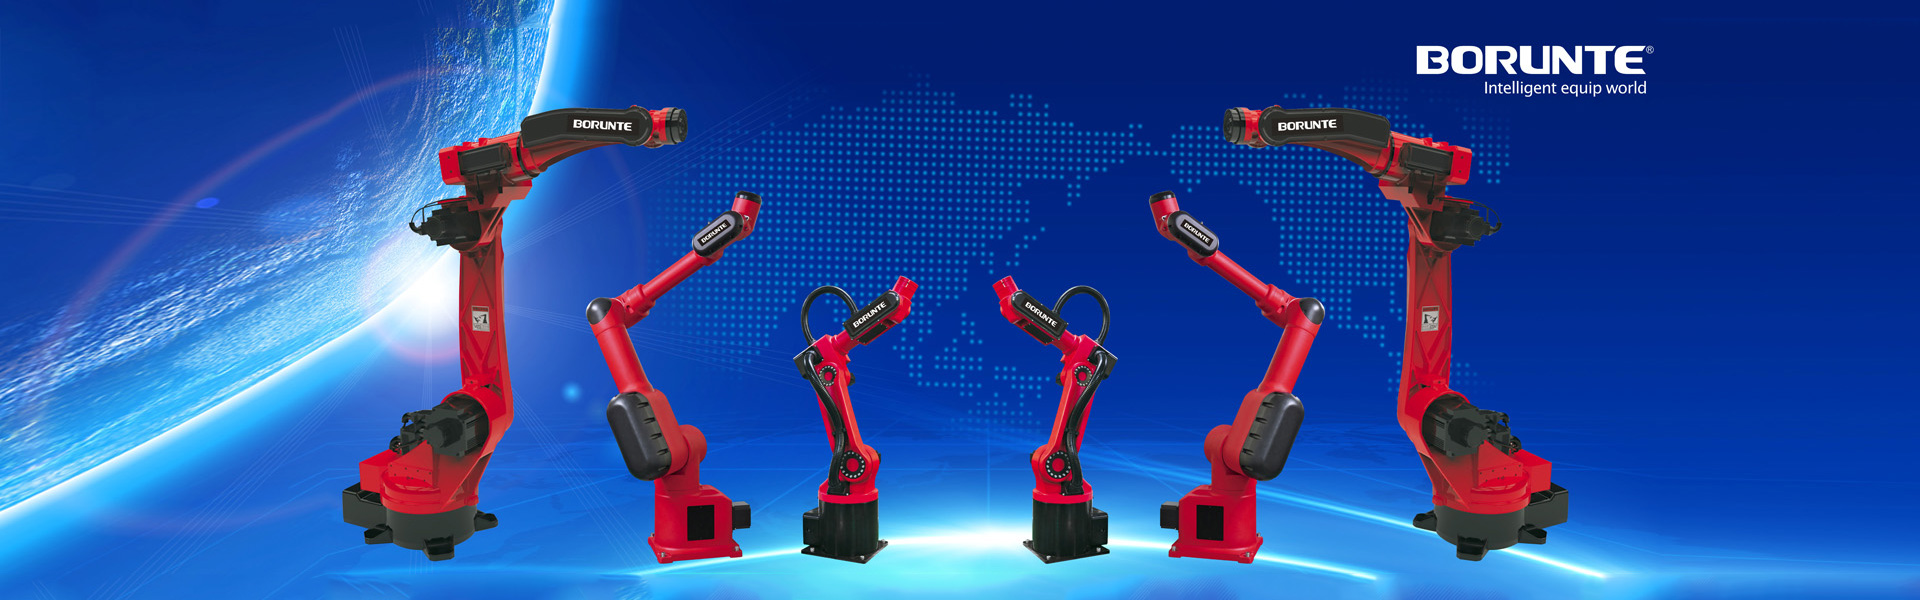 Guangdong Bo Langte intelligent equipment CO.,Ltd.